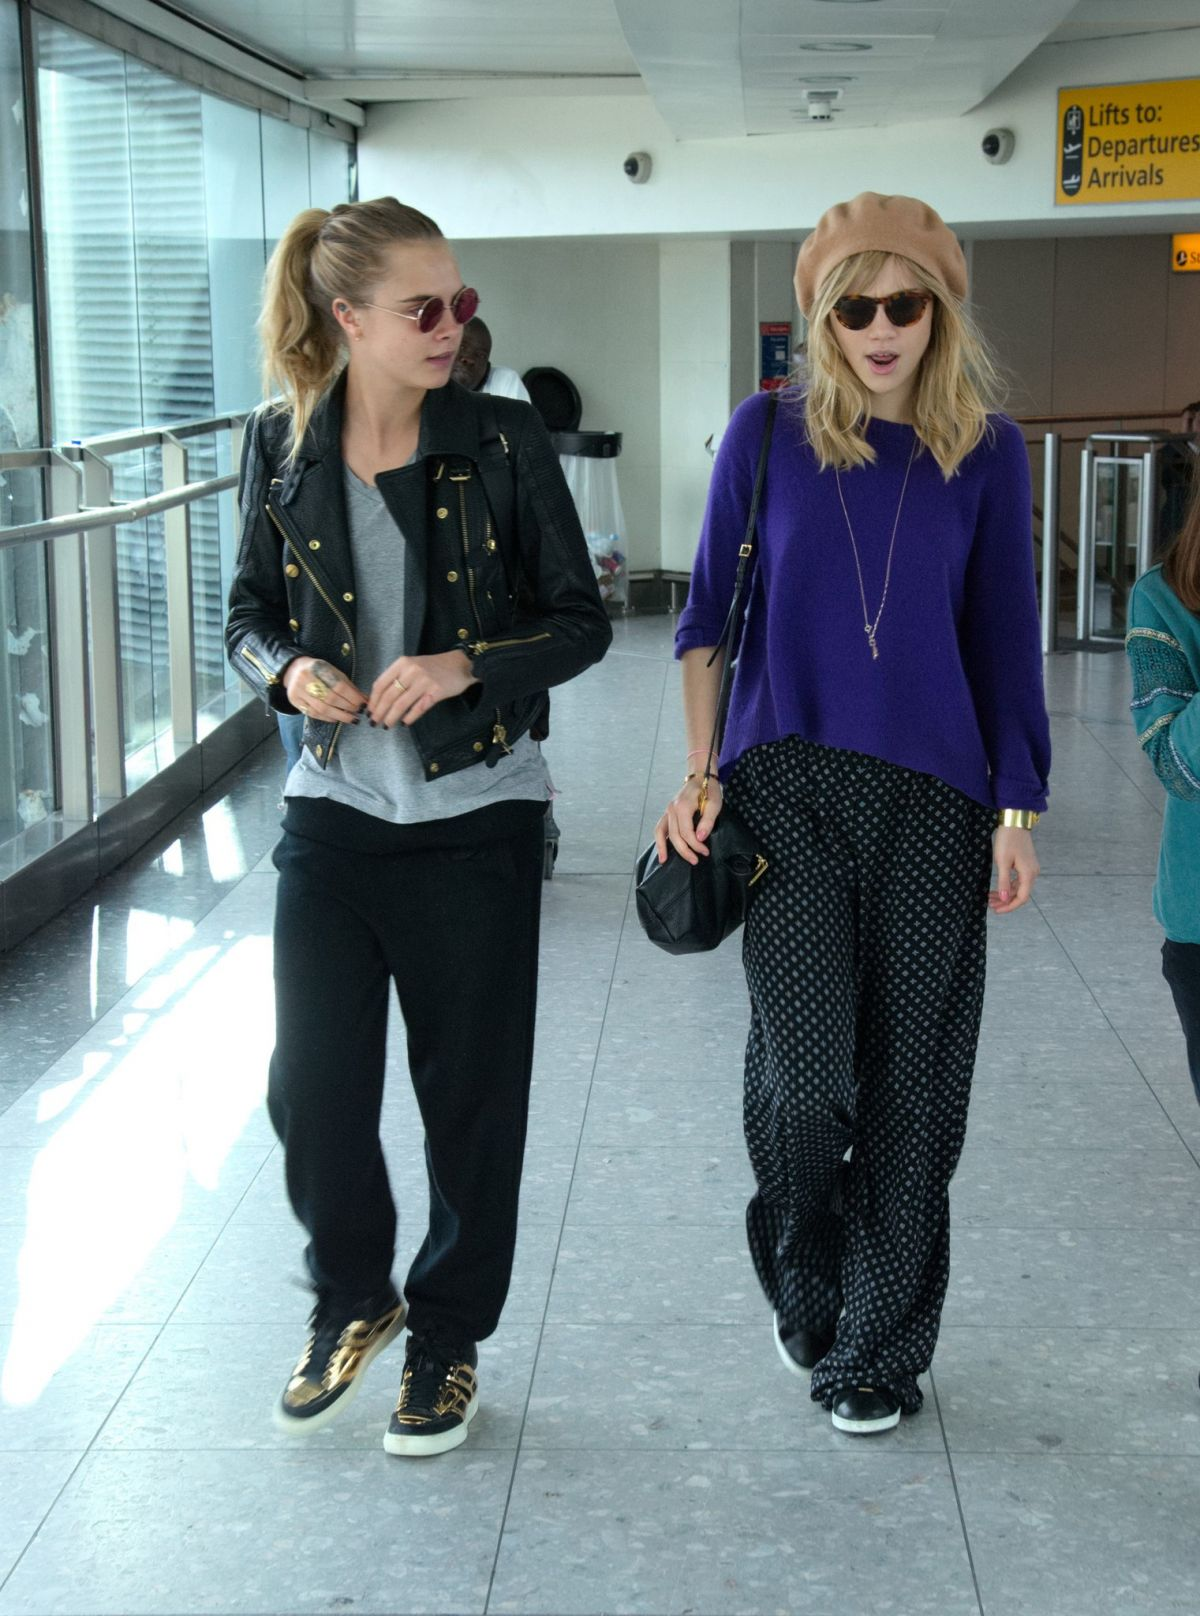 CARA DELEVINGNE and SUKI WATERHOUSE at Heathrow Airport in London ...